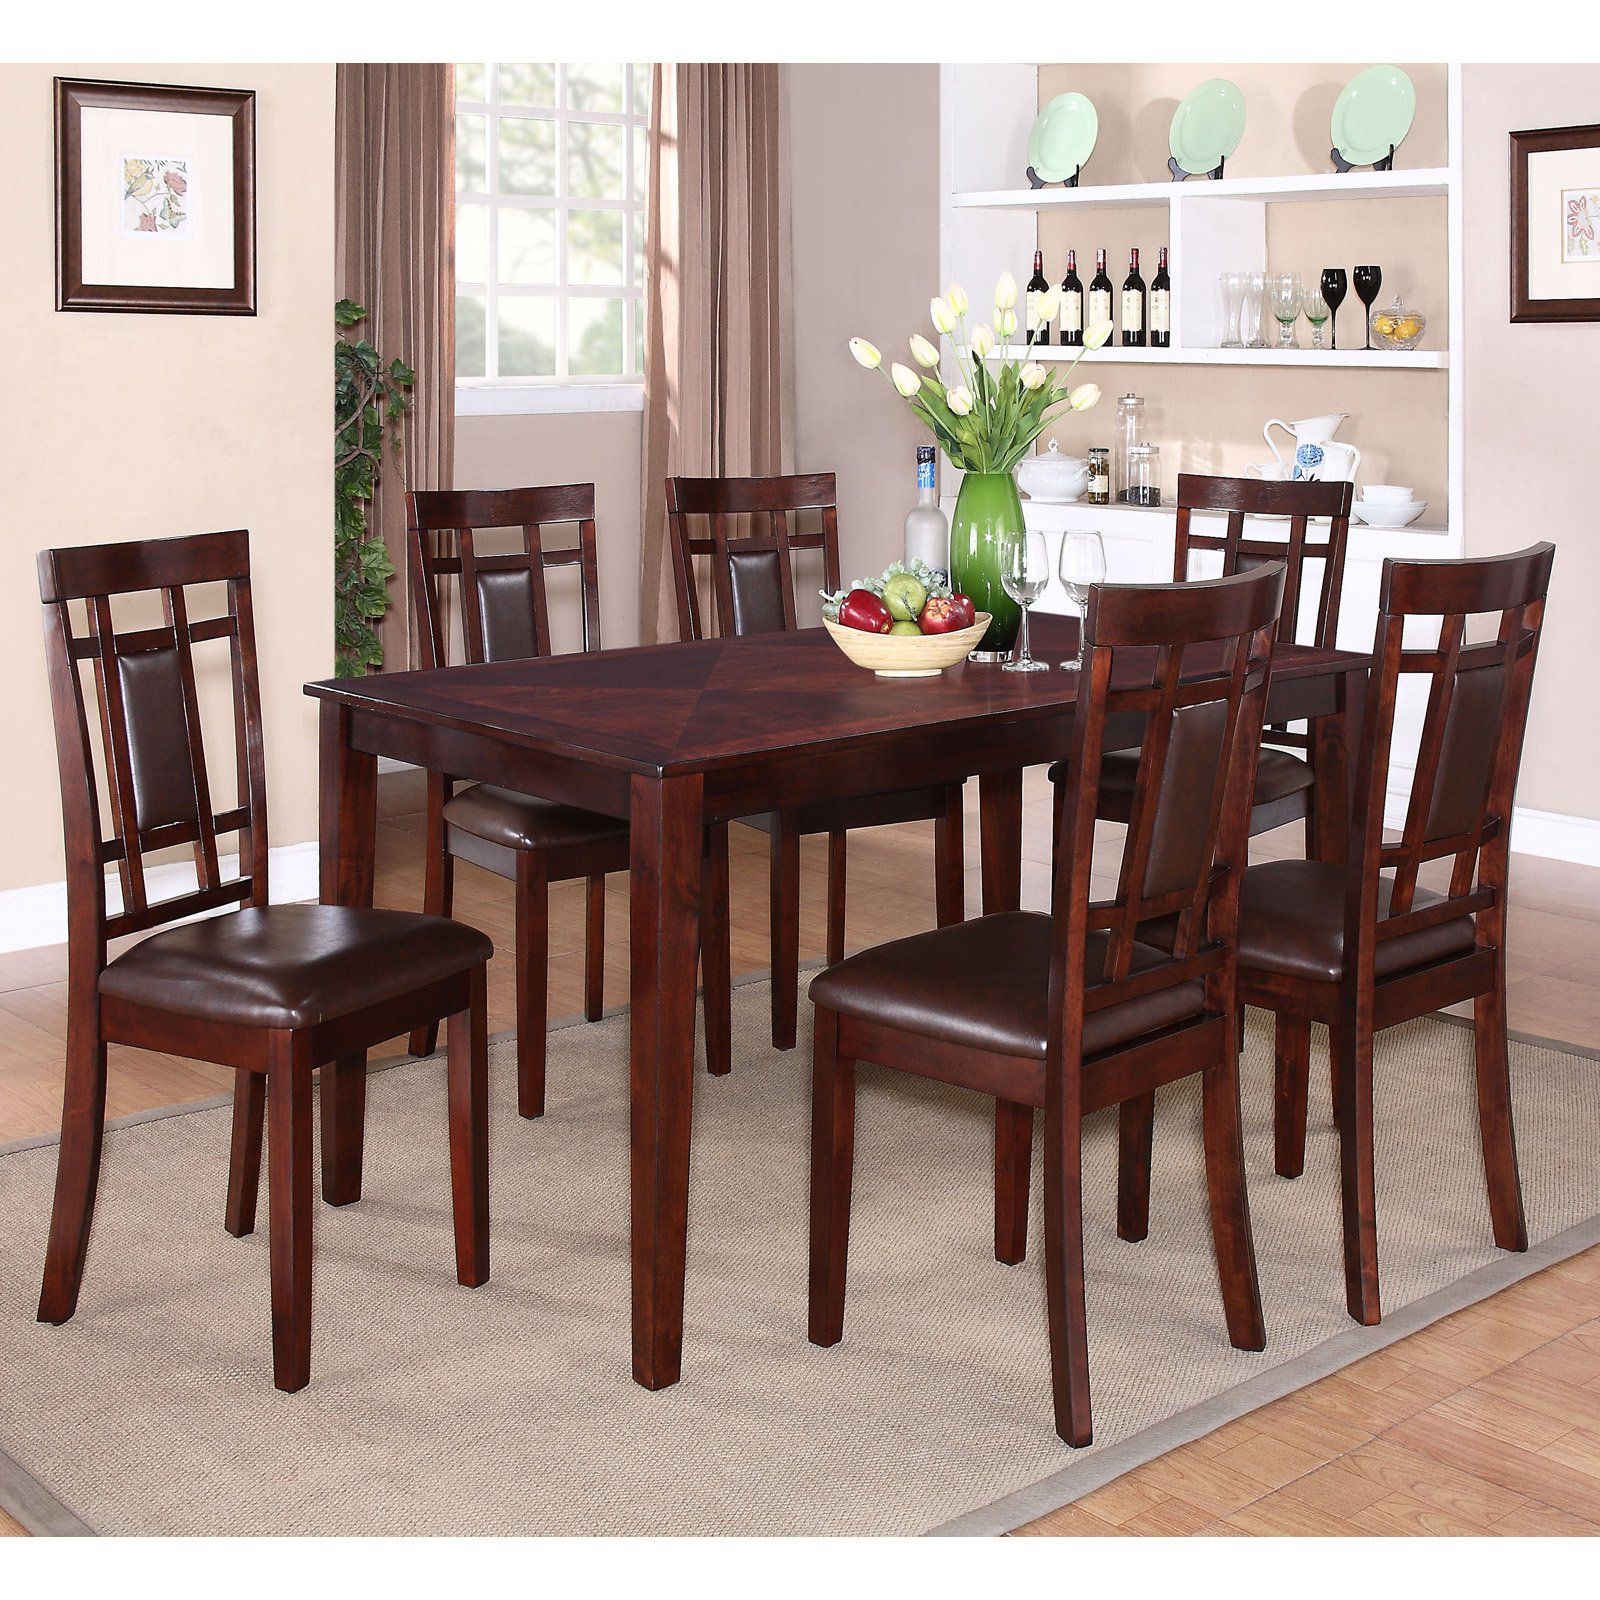 Standard Furniture Westlake 7 Piece Dining Table Set Rich Golden Brown by Standard Furniture